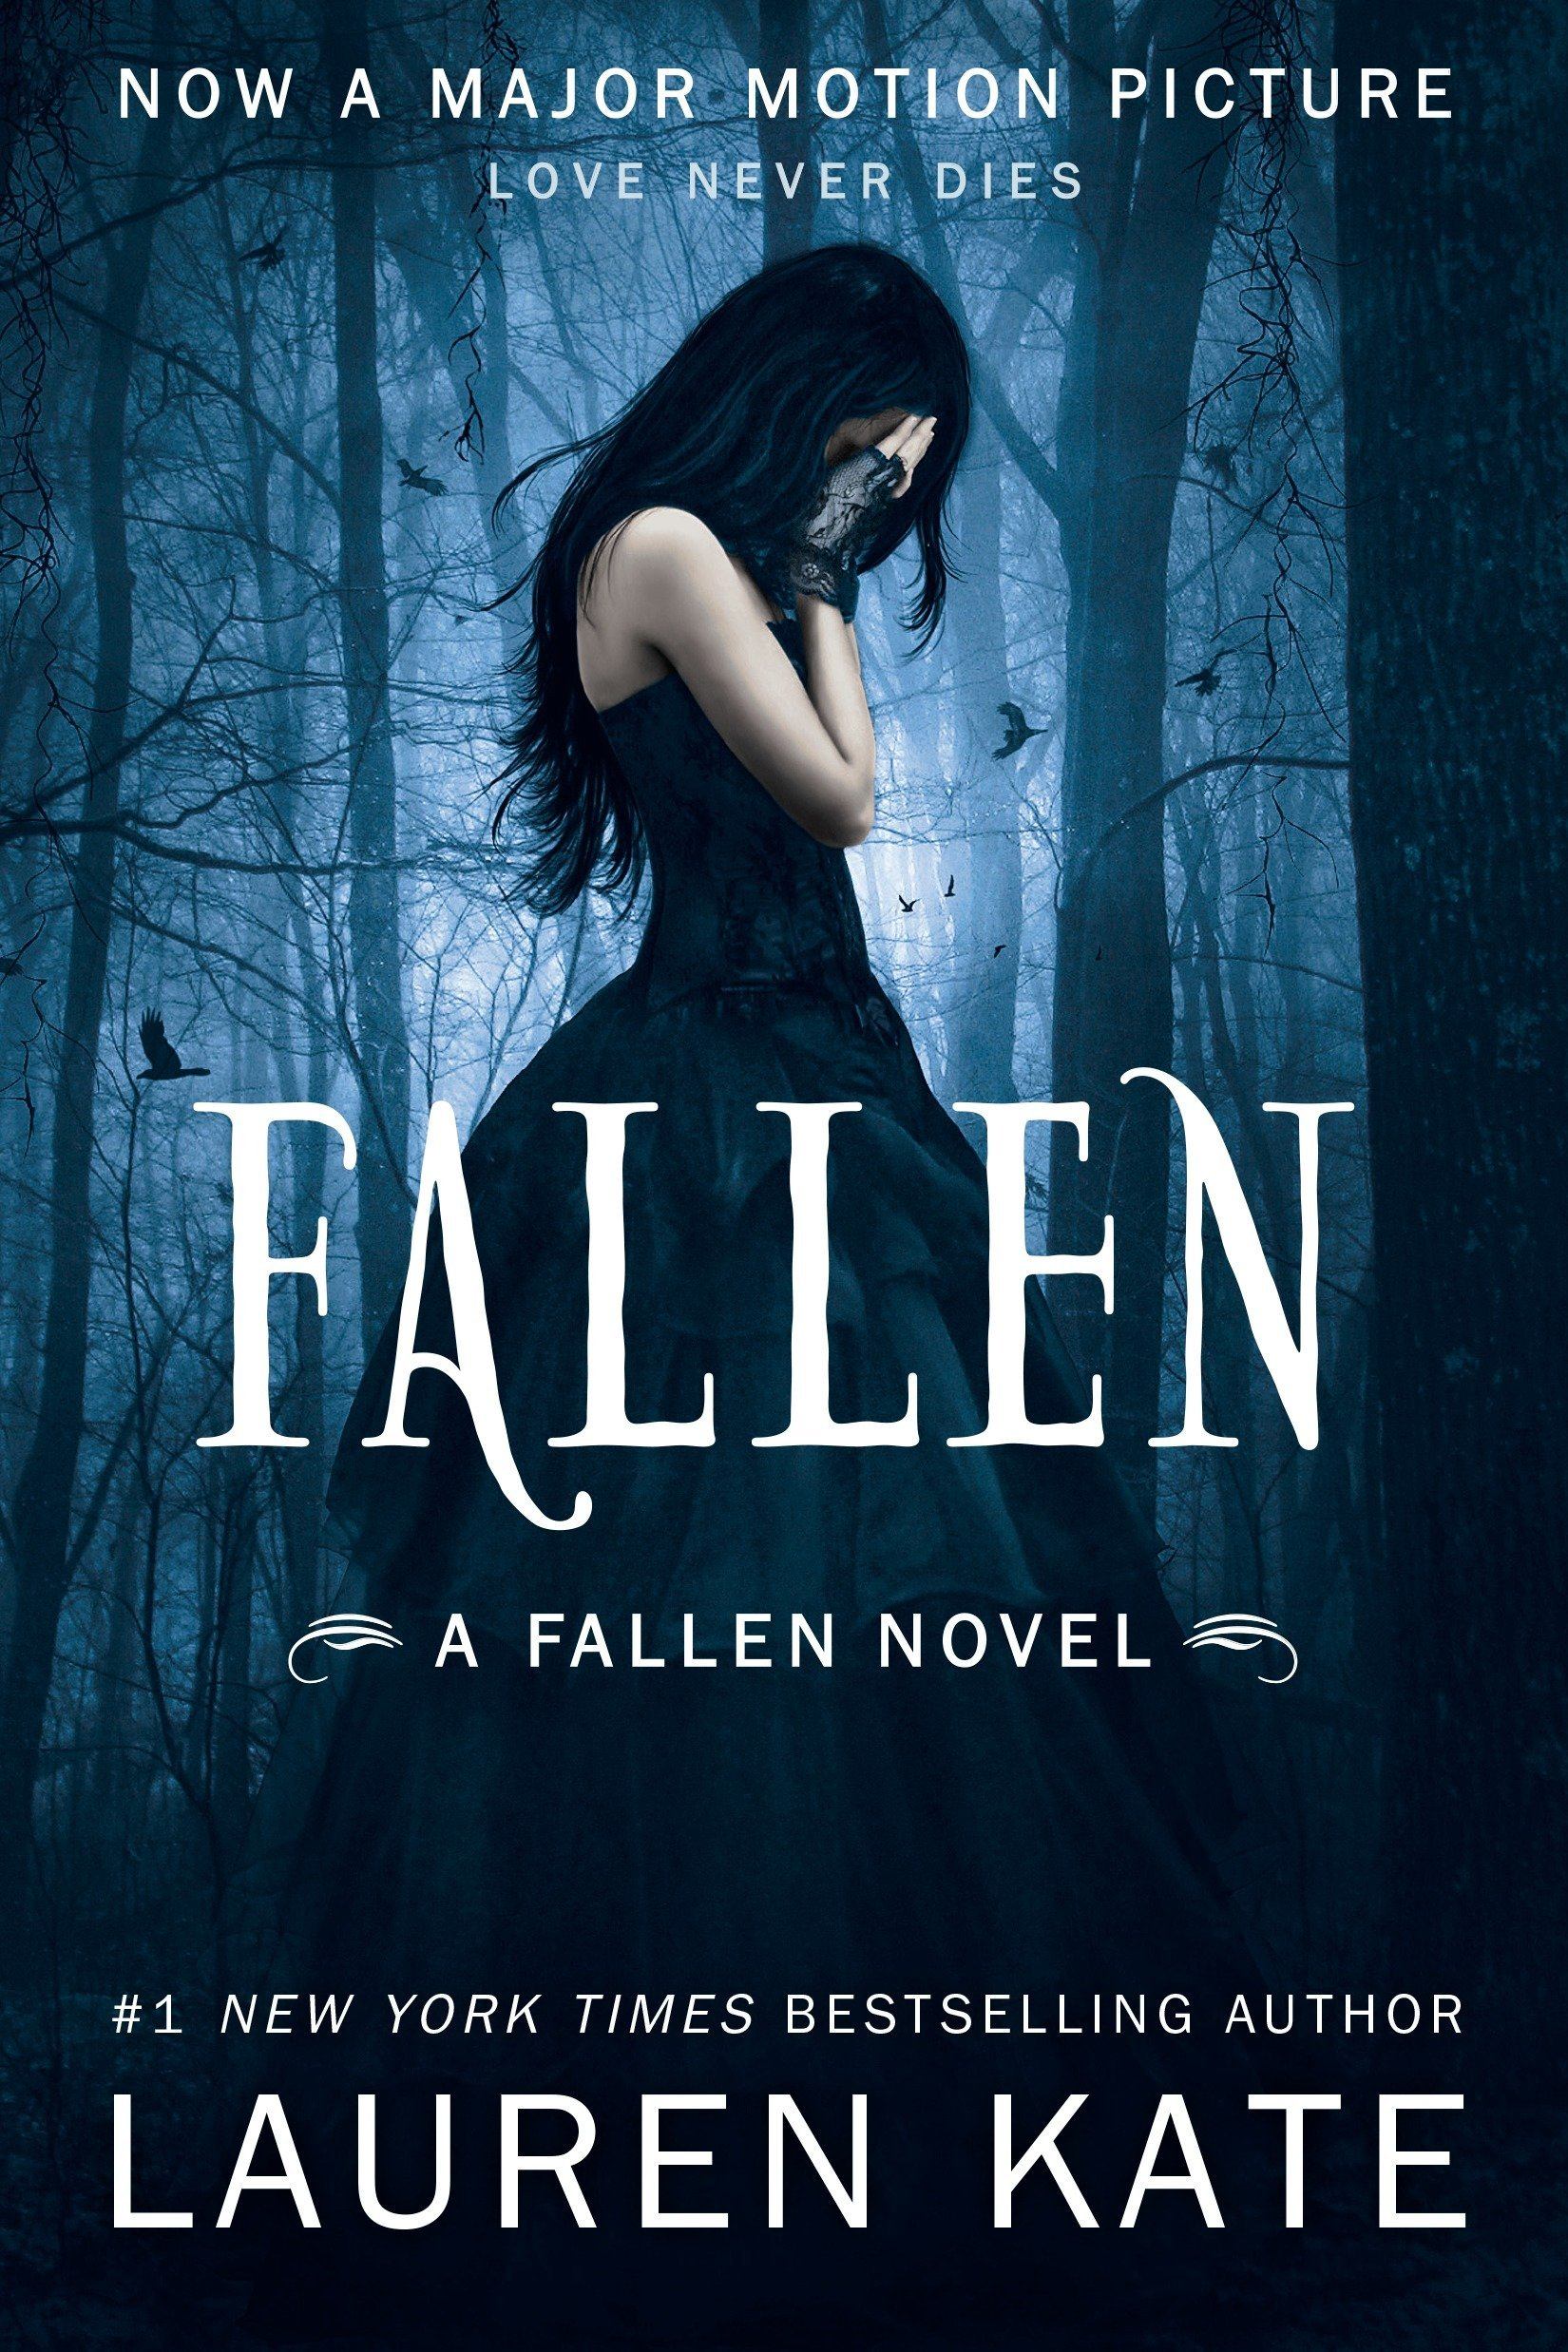 Amazon.com: Fallen (9780385739139): Kate, Lauren: Books